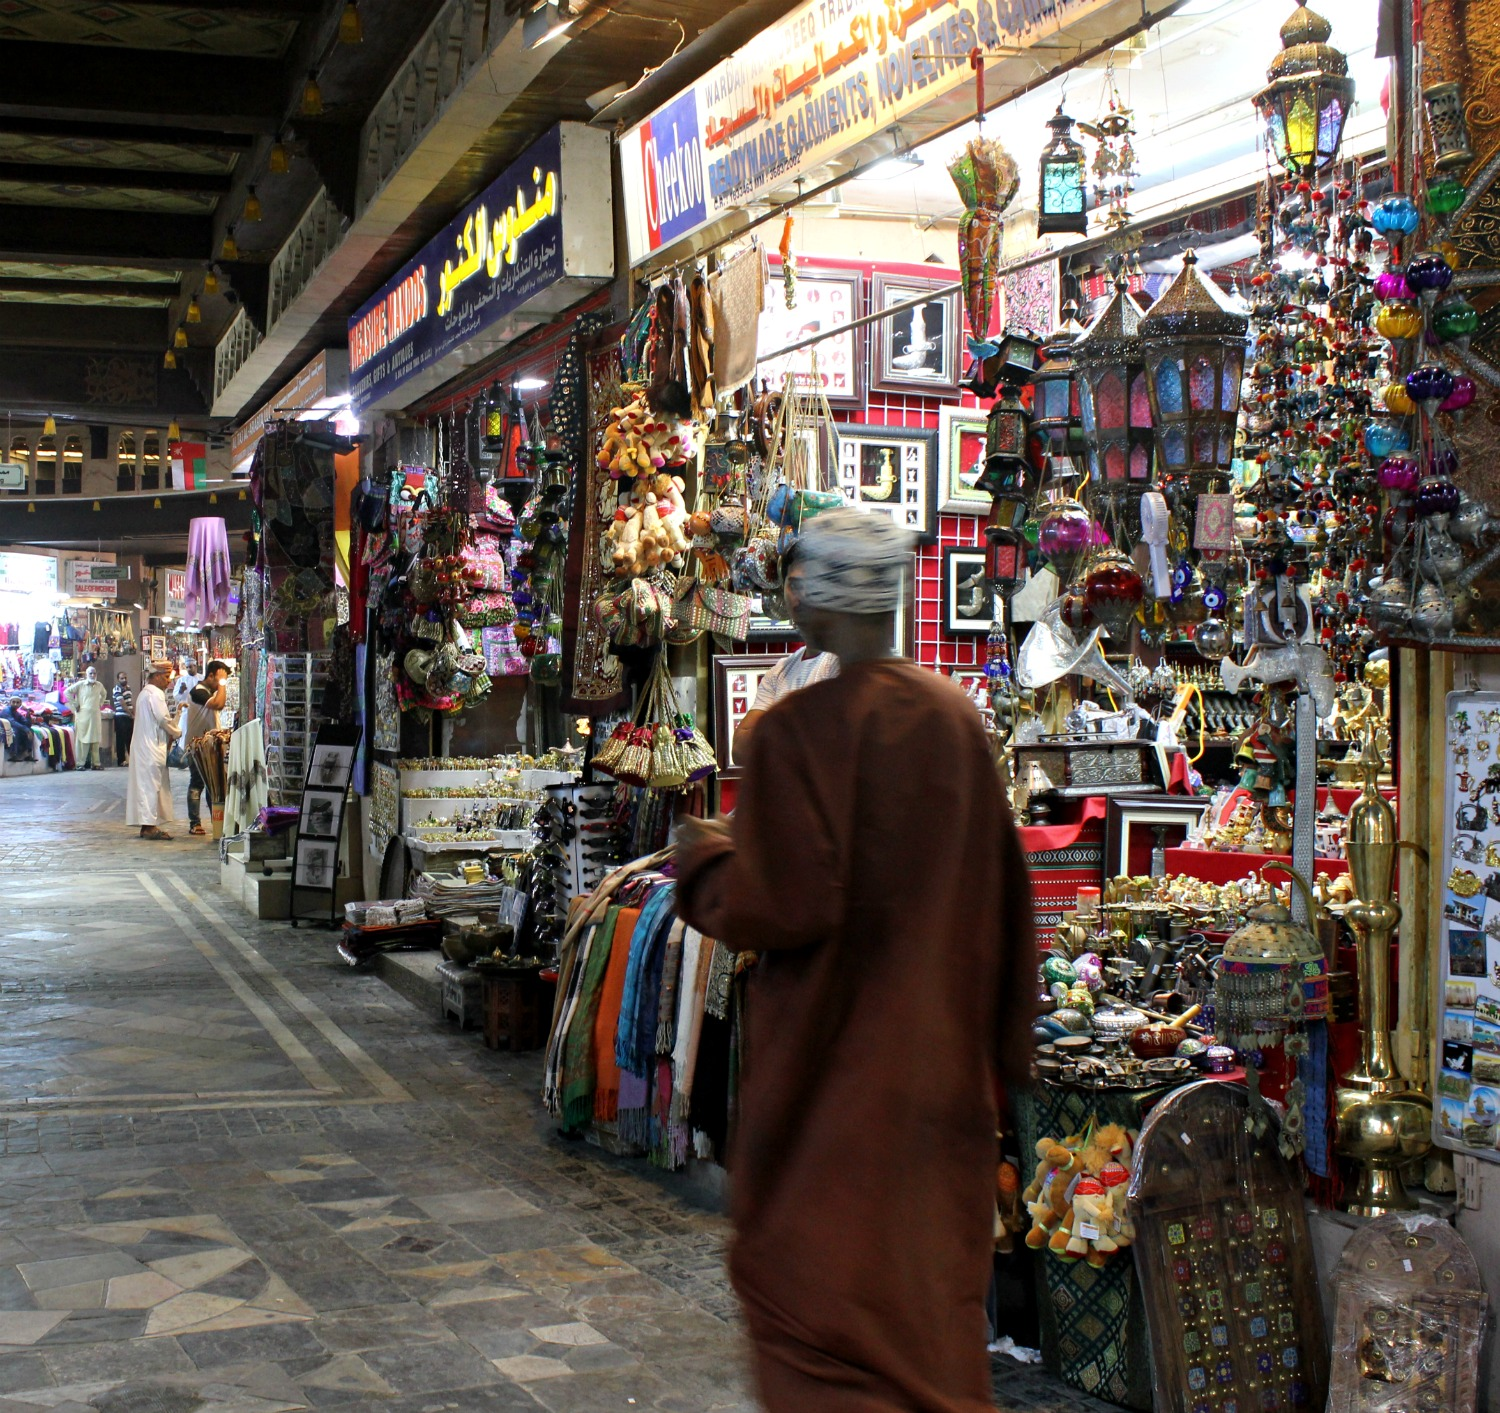 A man walked through Mutrah souk, the oldest in Muscat - my tips for spending 24 hours in Muscat, Oman with kids